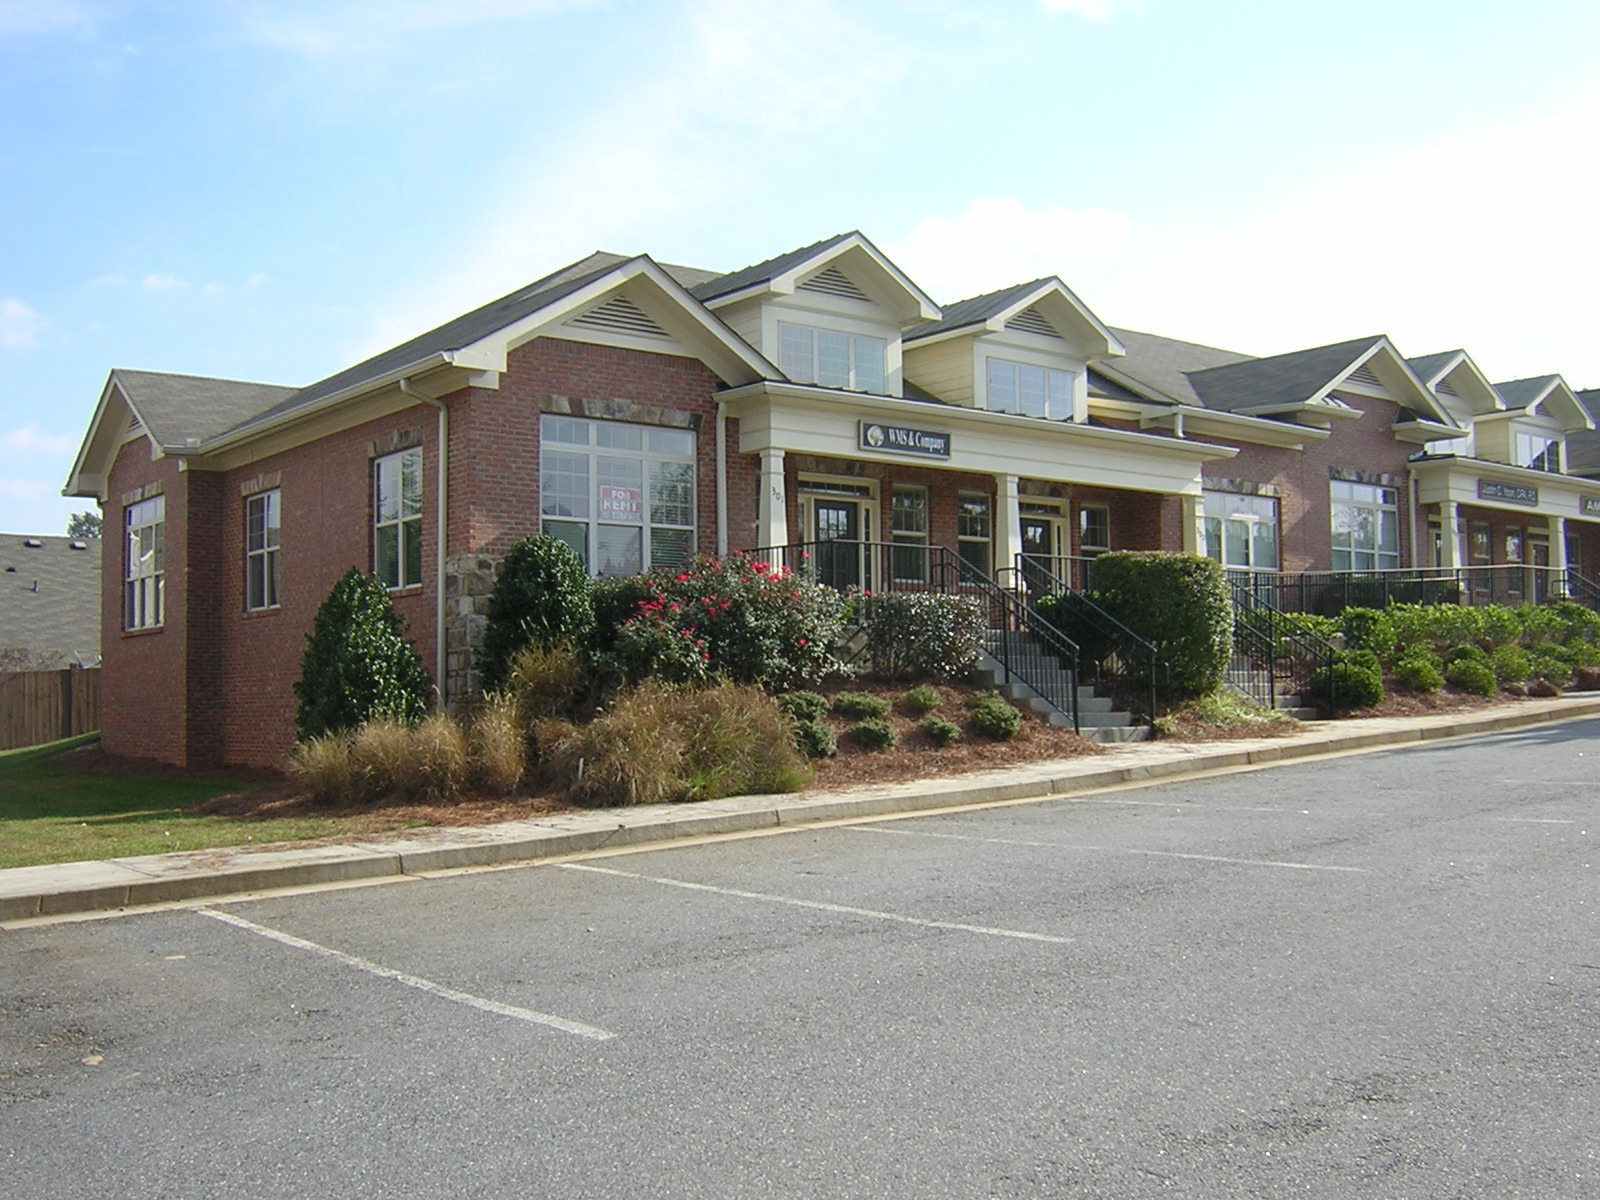 Riverdance Office Park 1110 Satellite Boulevard, Suite 301 Suwanee, GA 30024